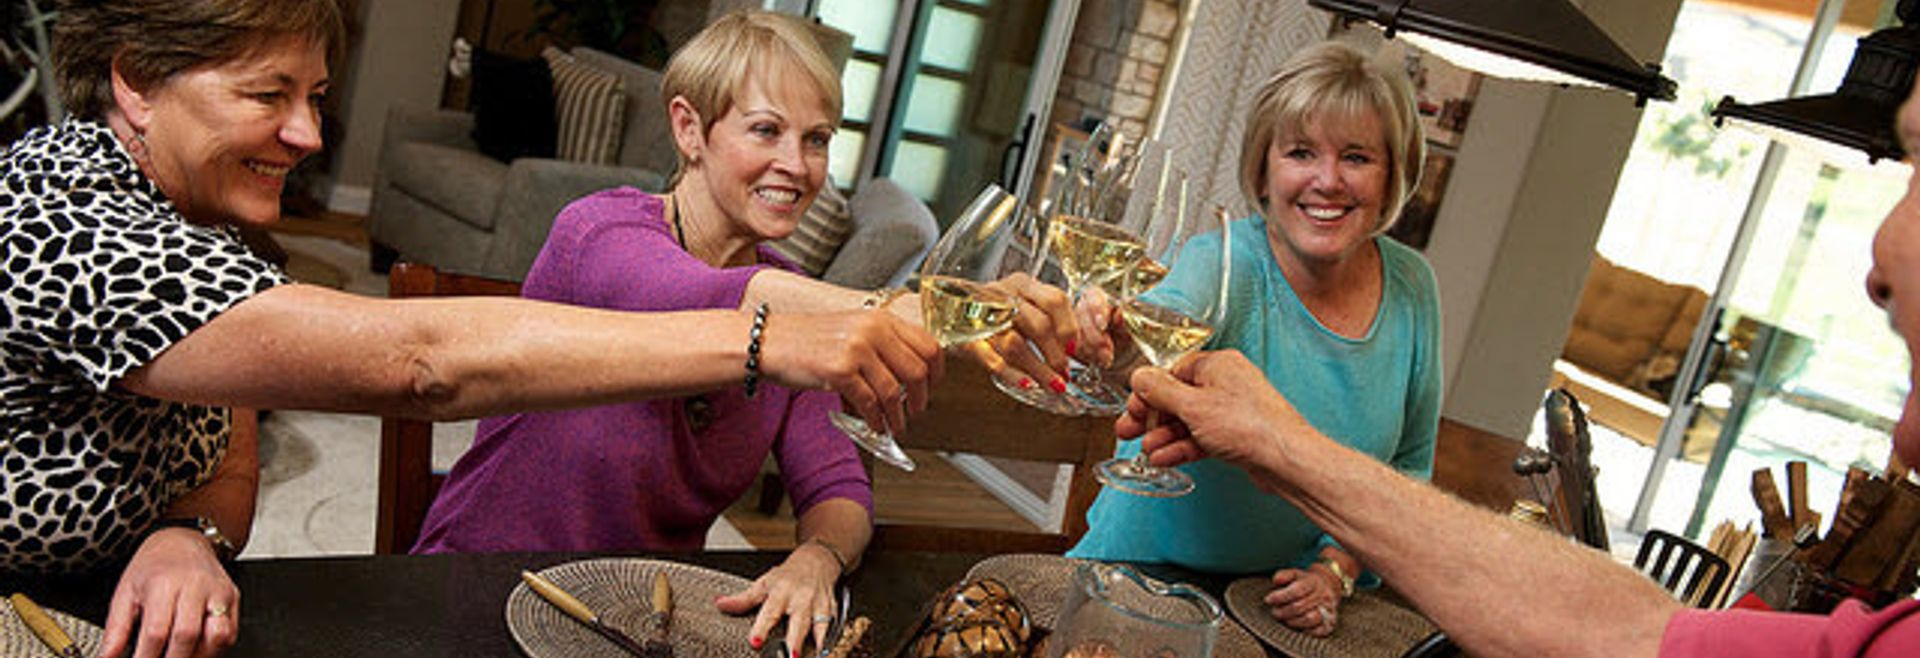 Group of Women Toasting With Wine